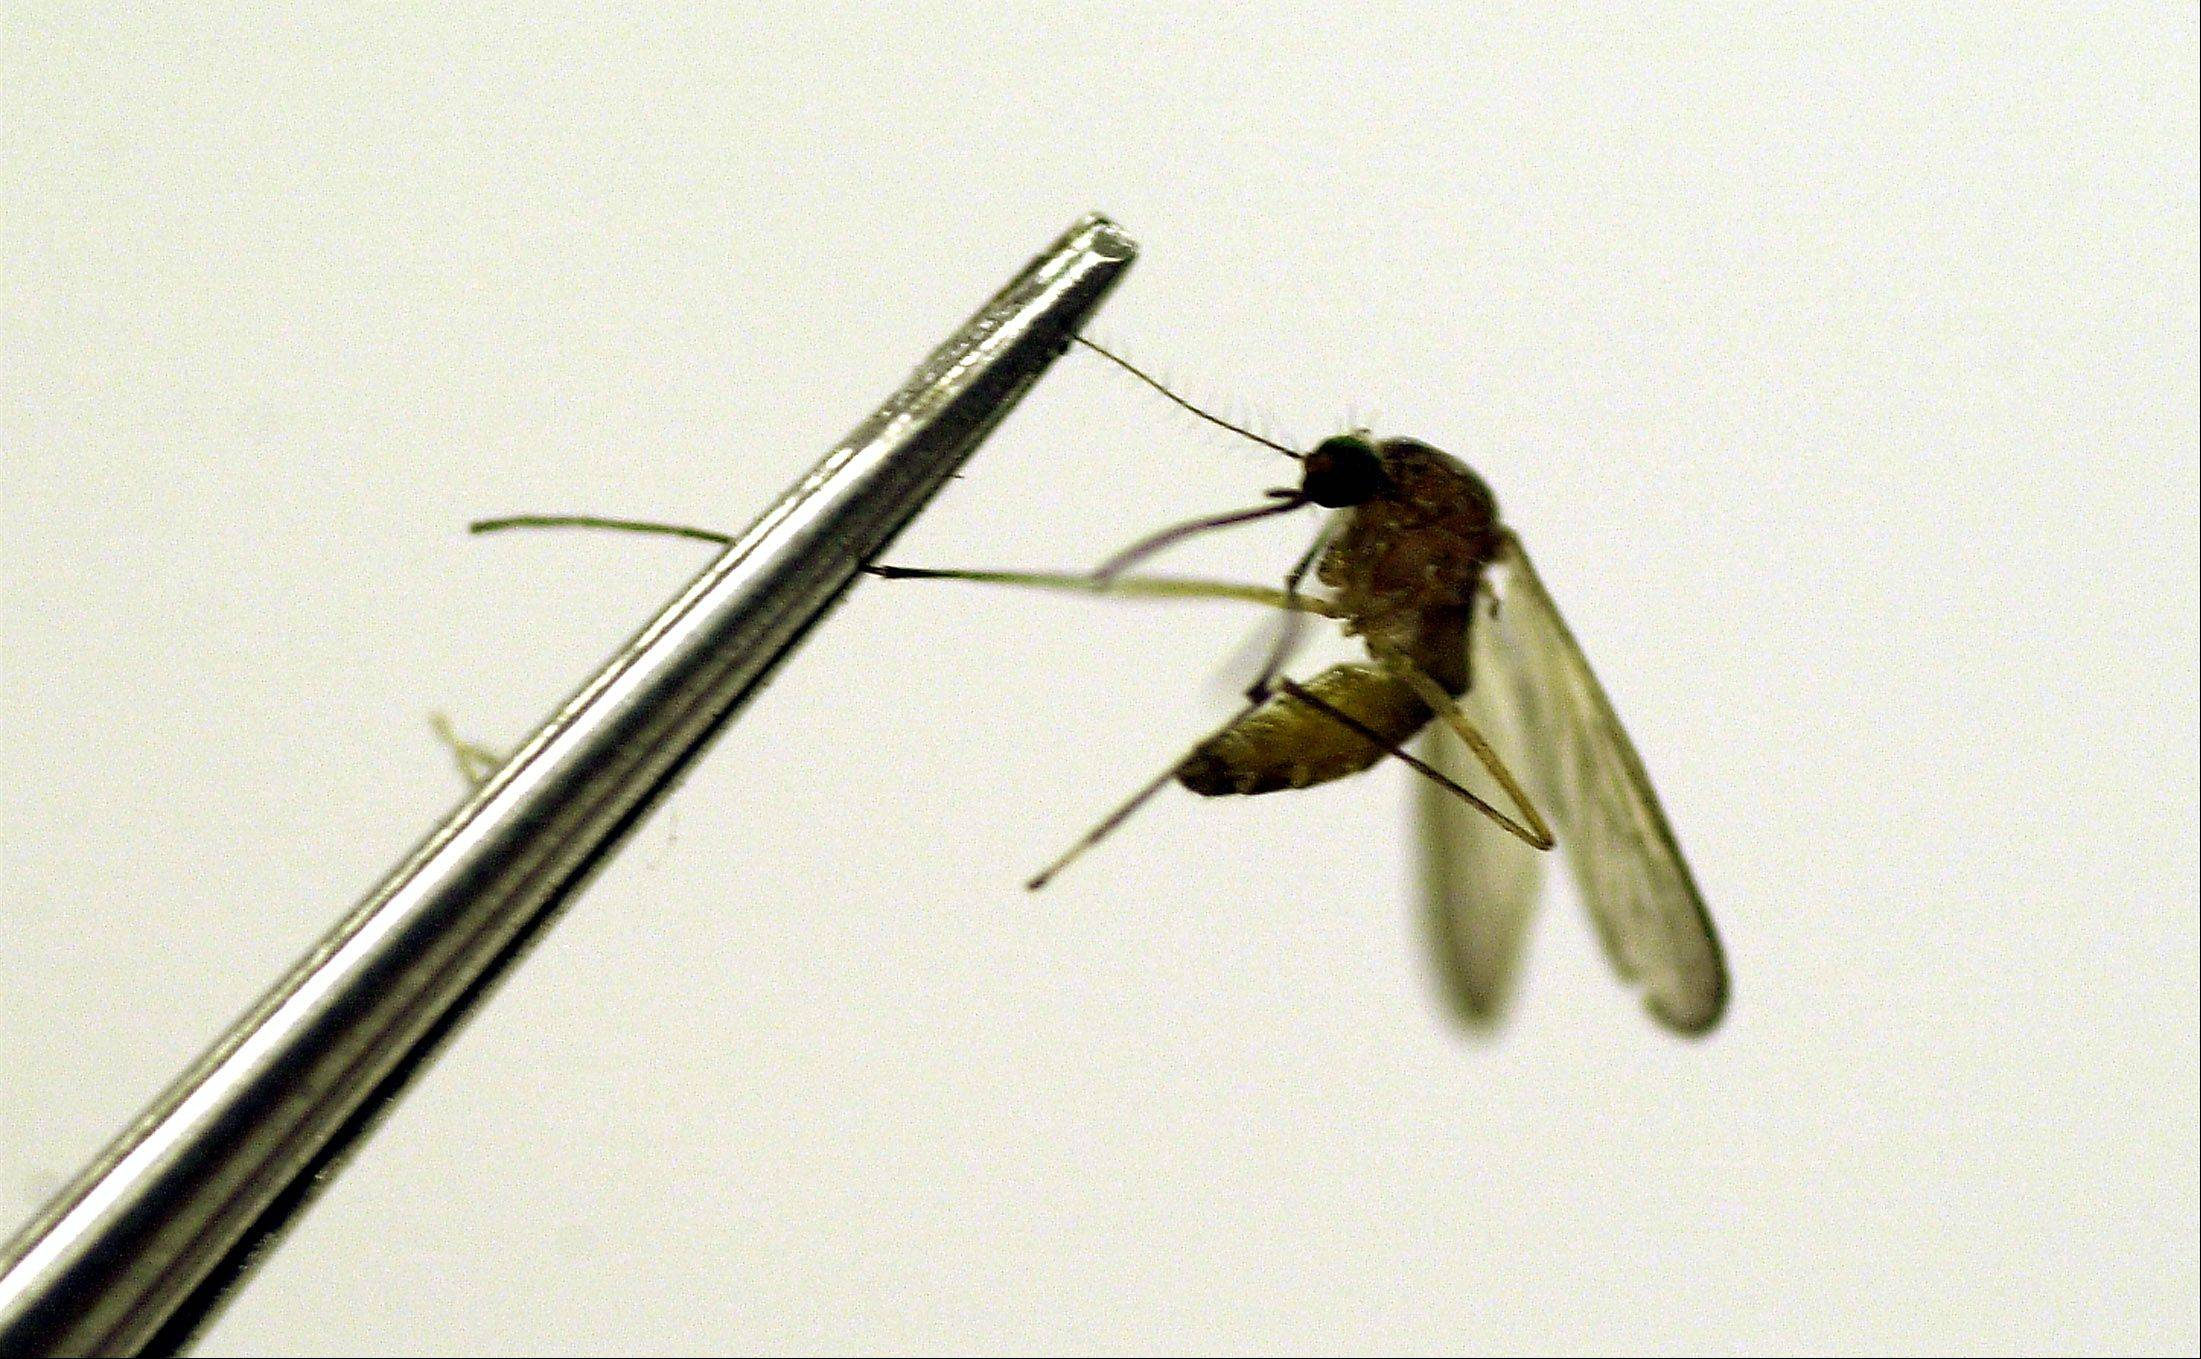 It�s back � a sampling of mosquitoes collected in Hillside tested positive for West Nile virus.